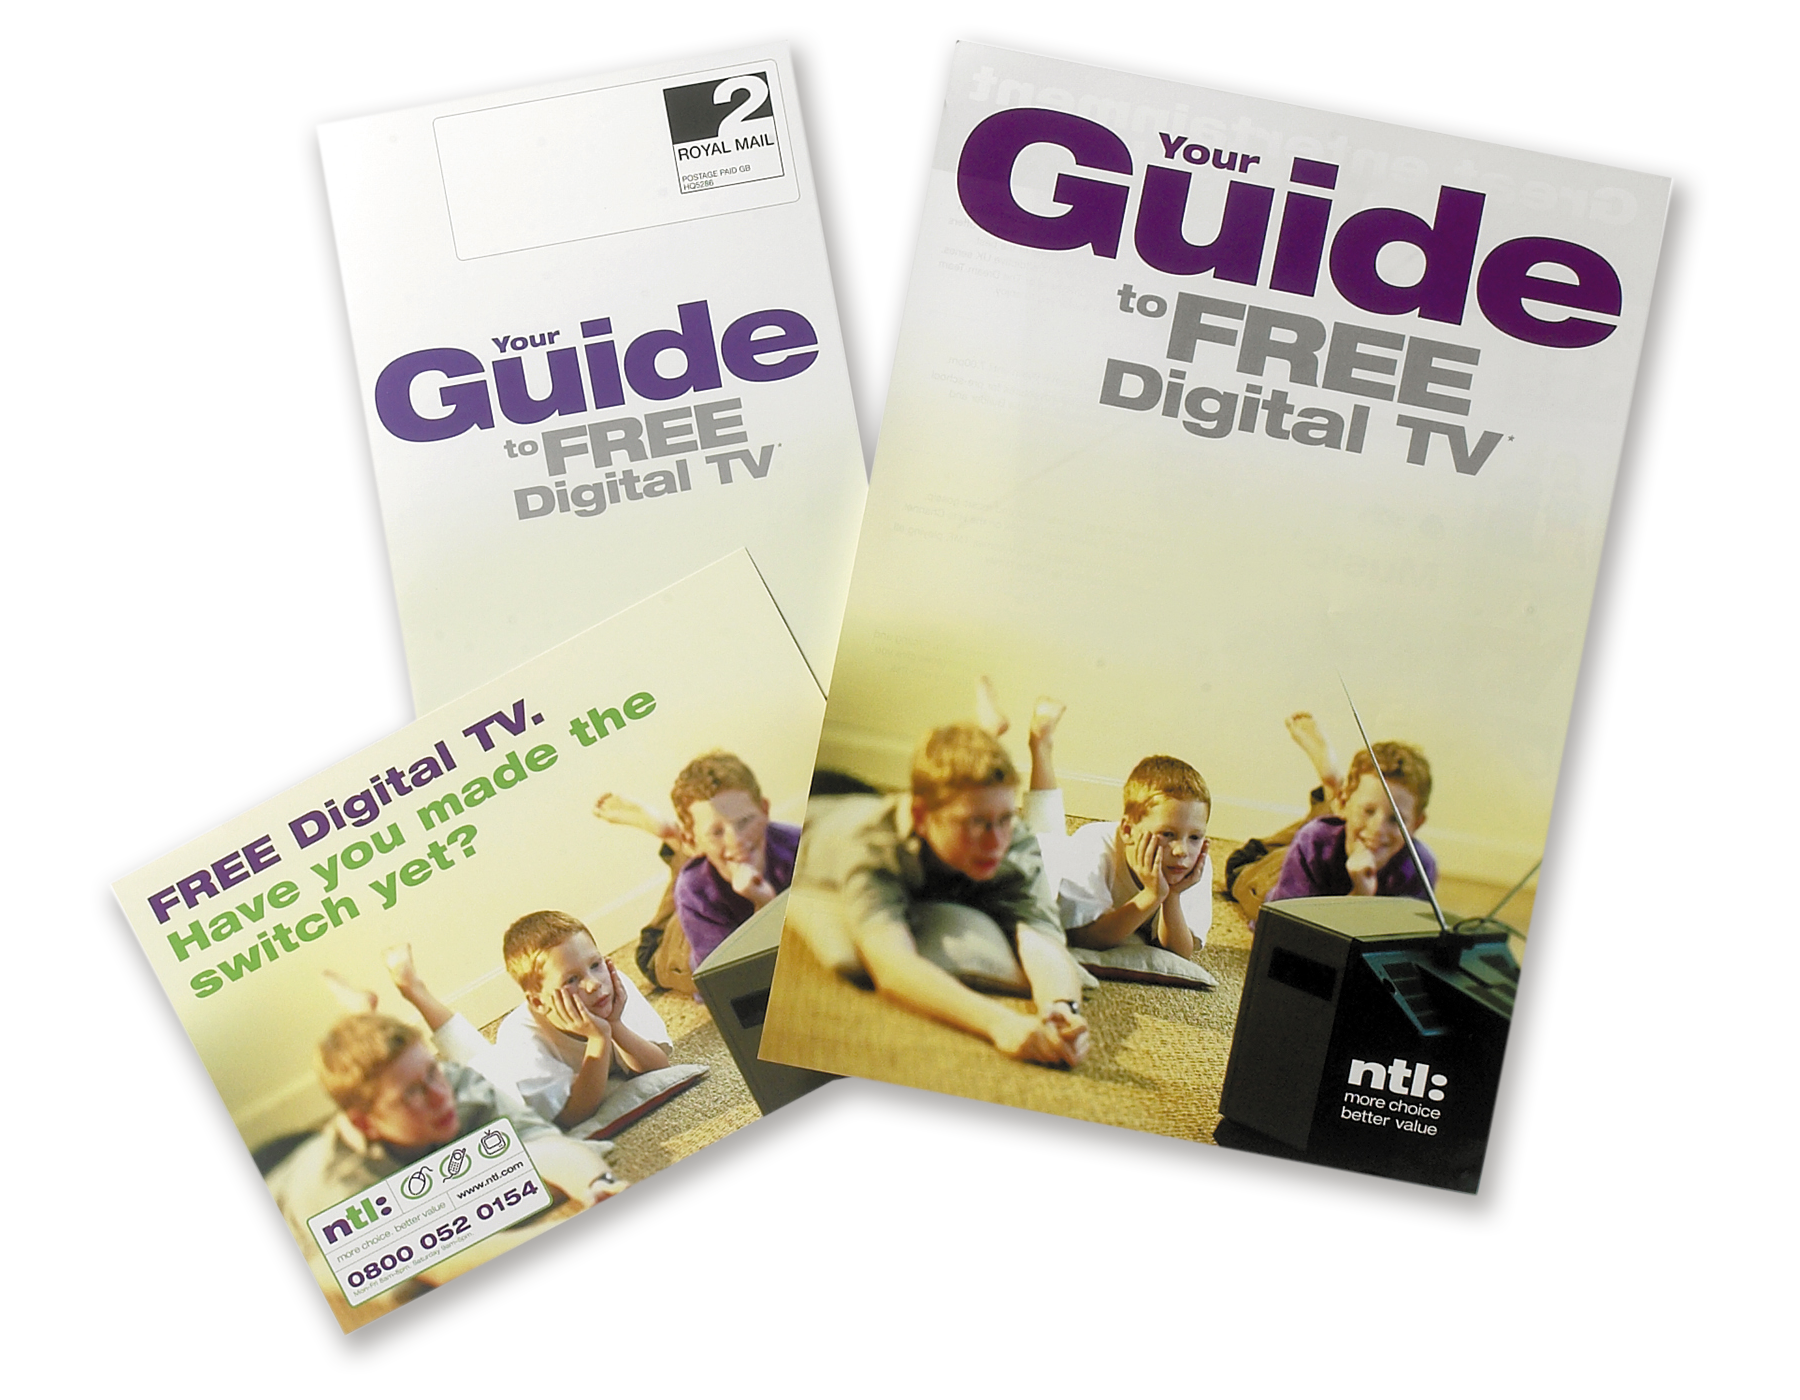 NTL Free Digital TV Guide